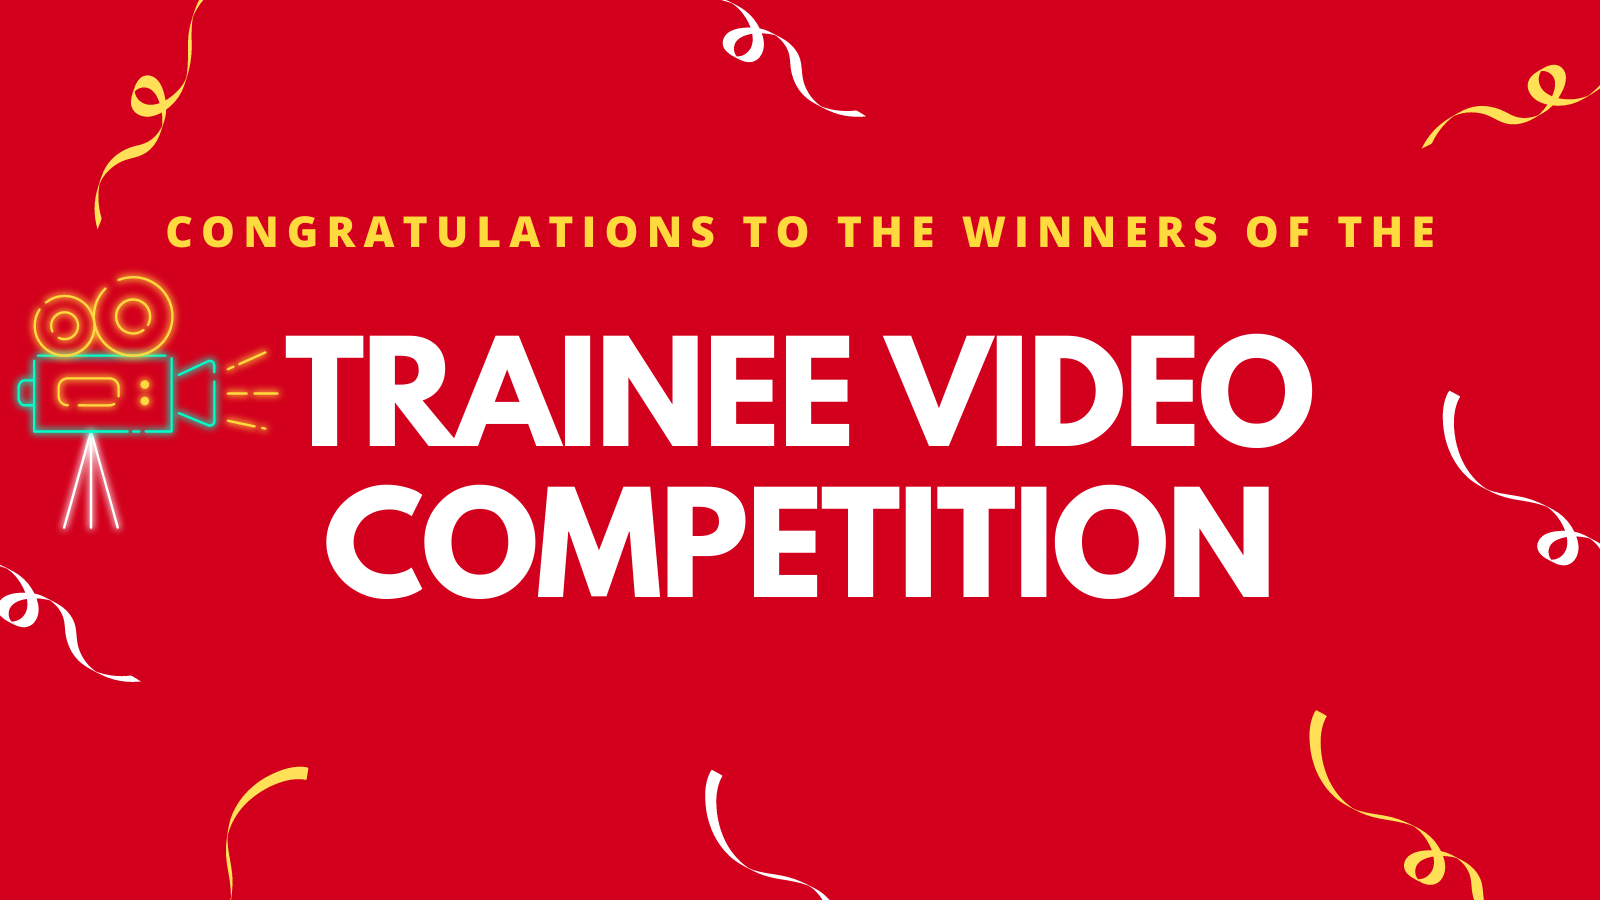 Red banner saying Trainee Video Competition